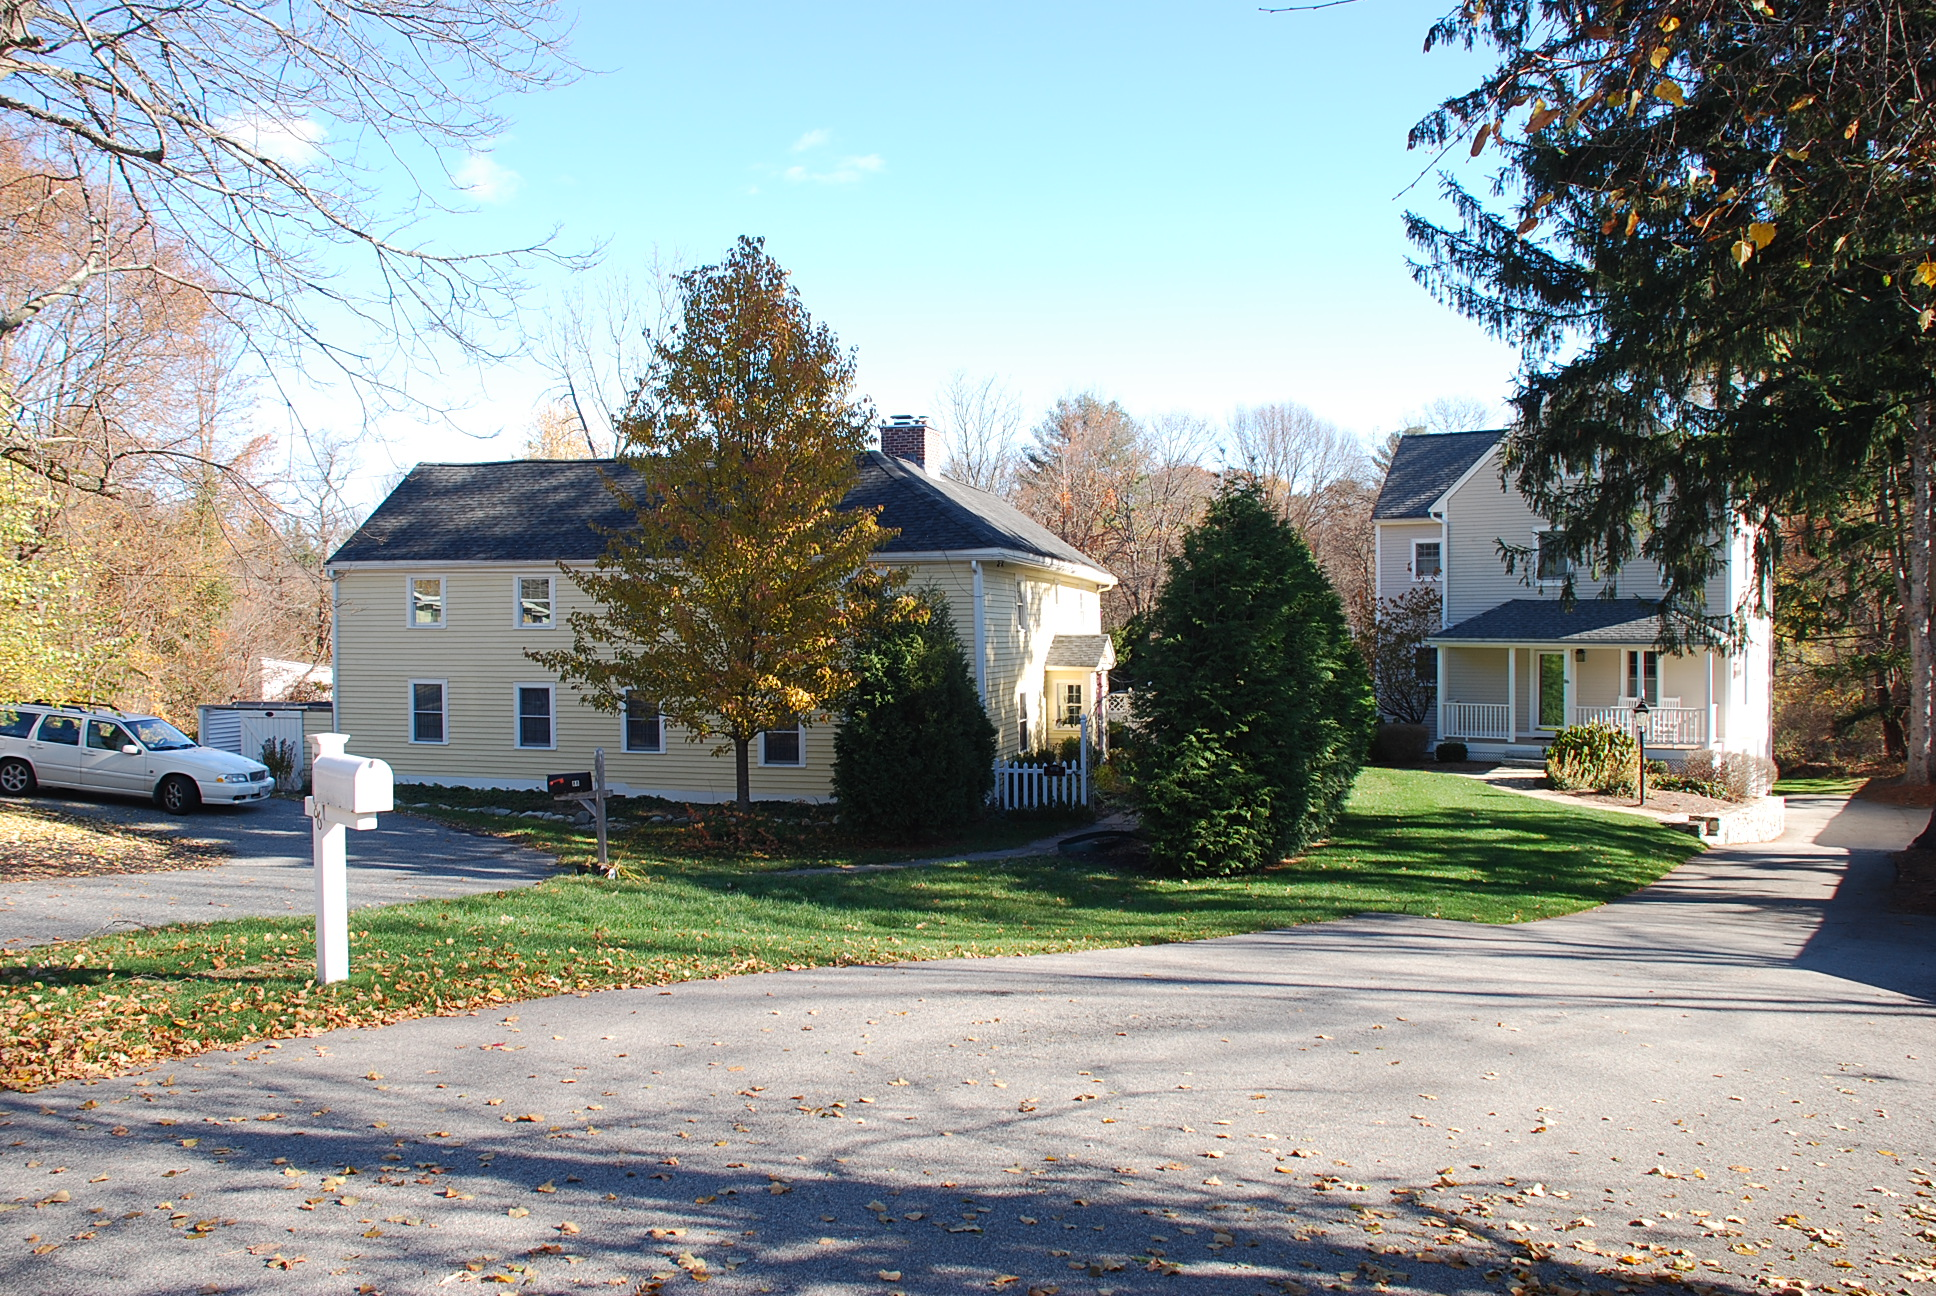 88 Lowell Street | Andover Historic Preservation